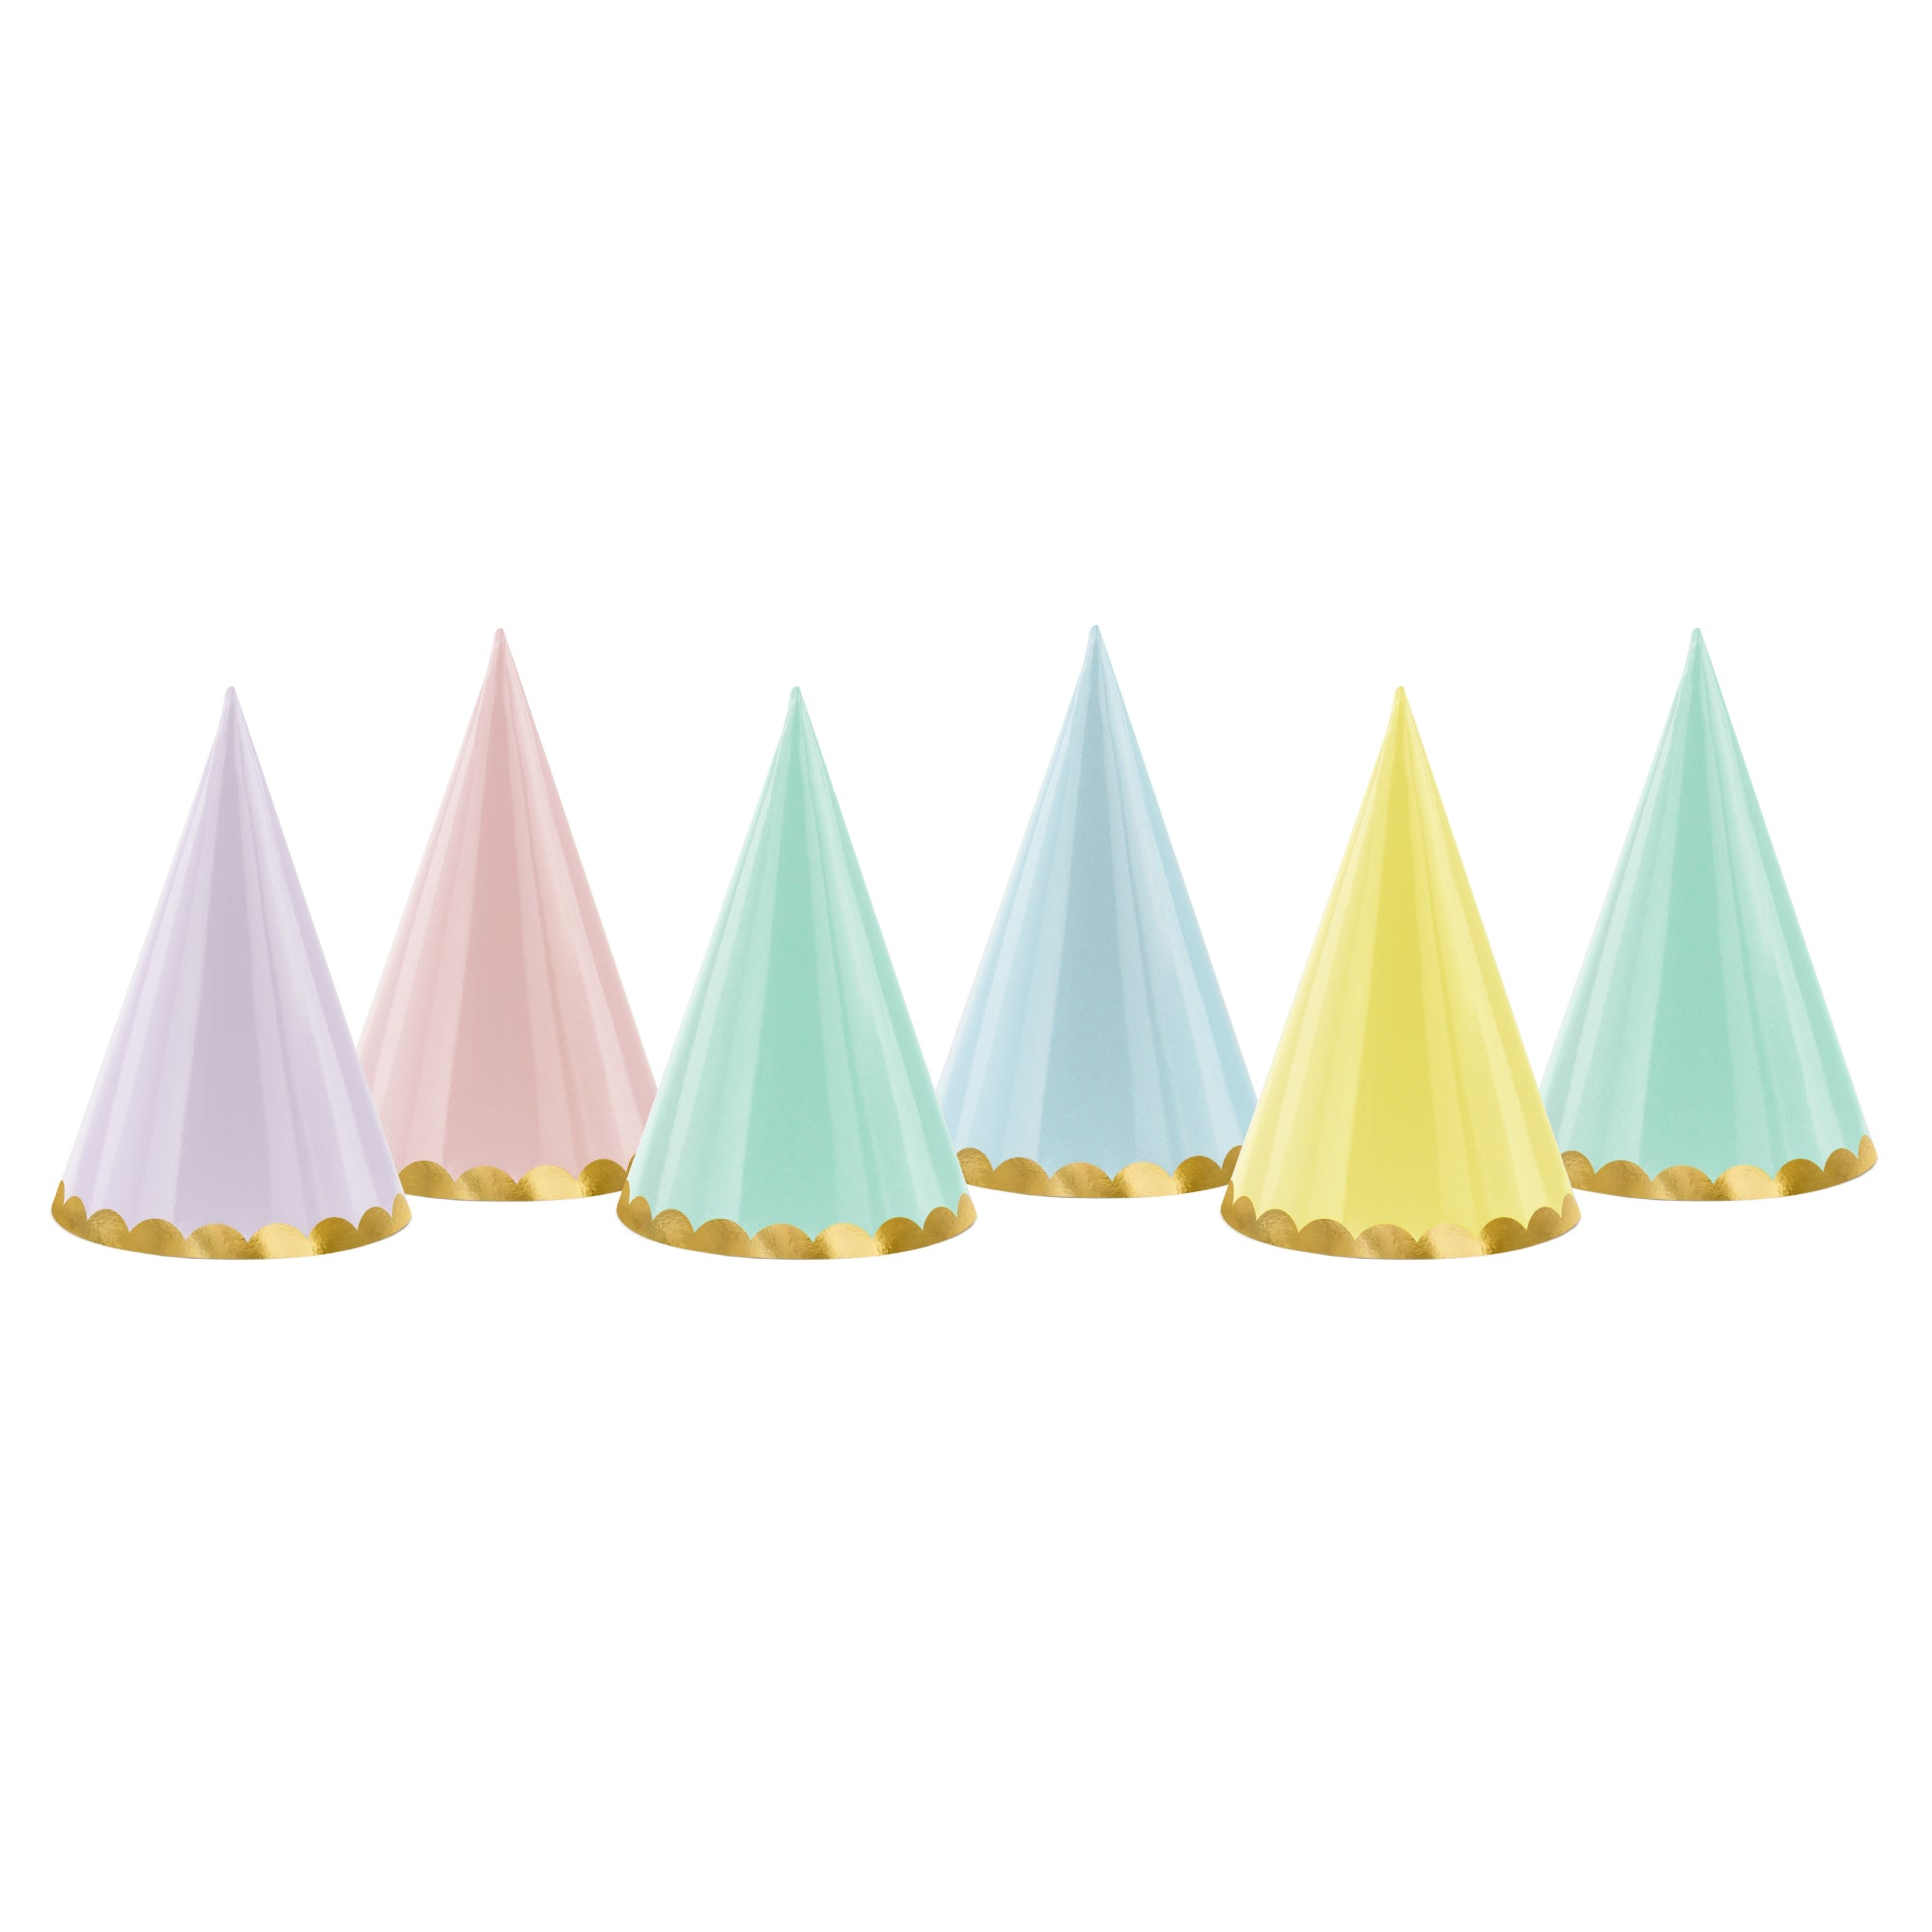 Assorted Pastel Party Hats